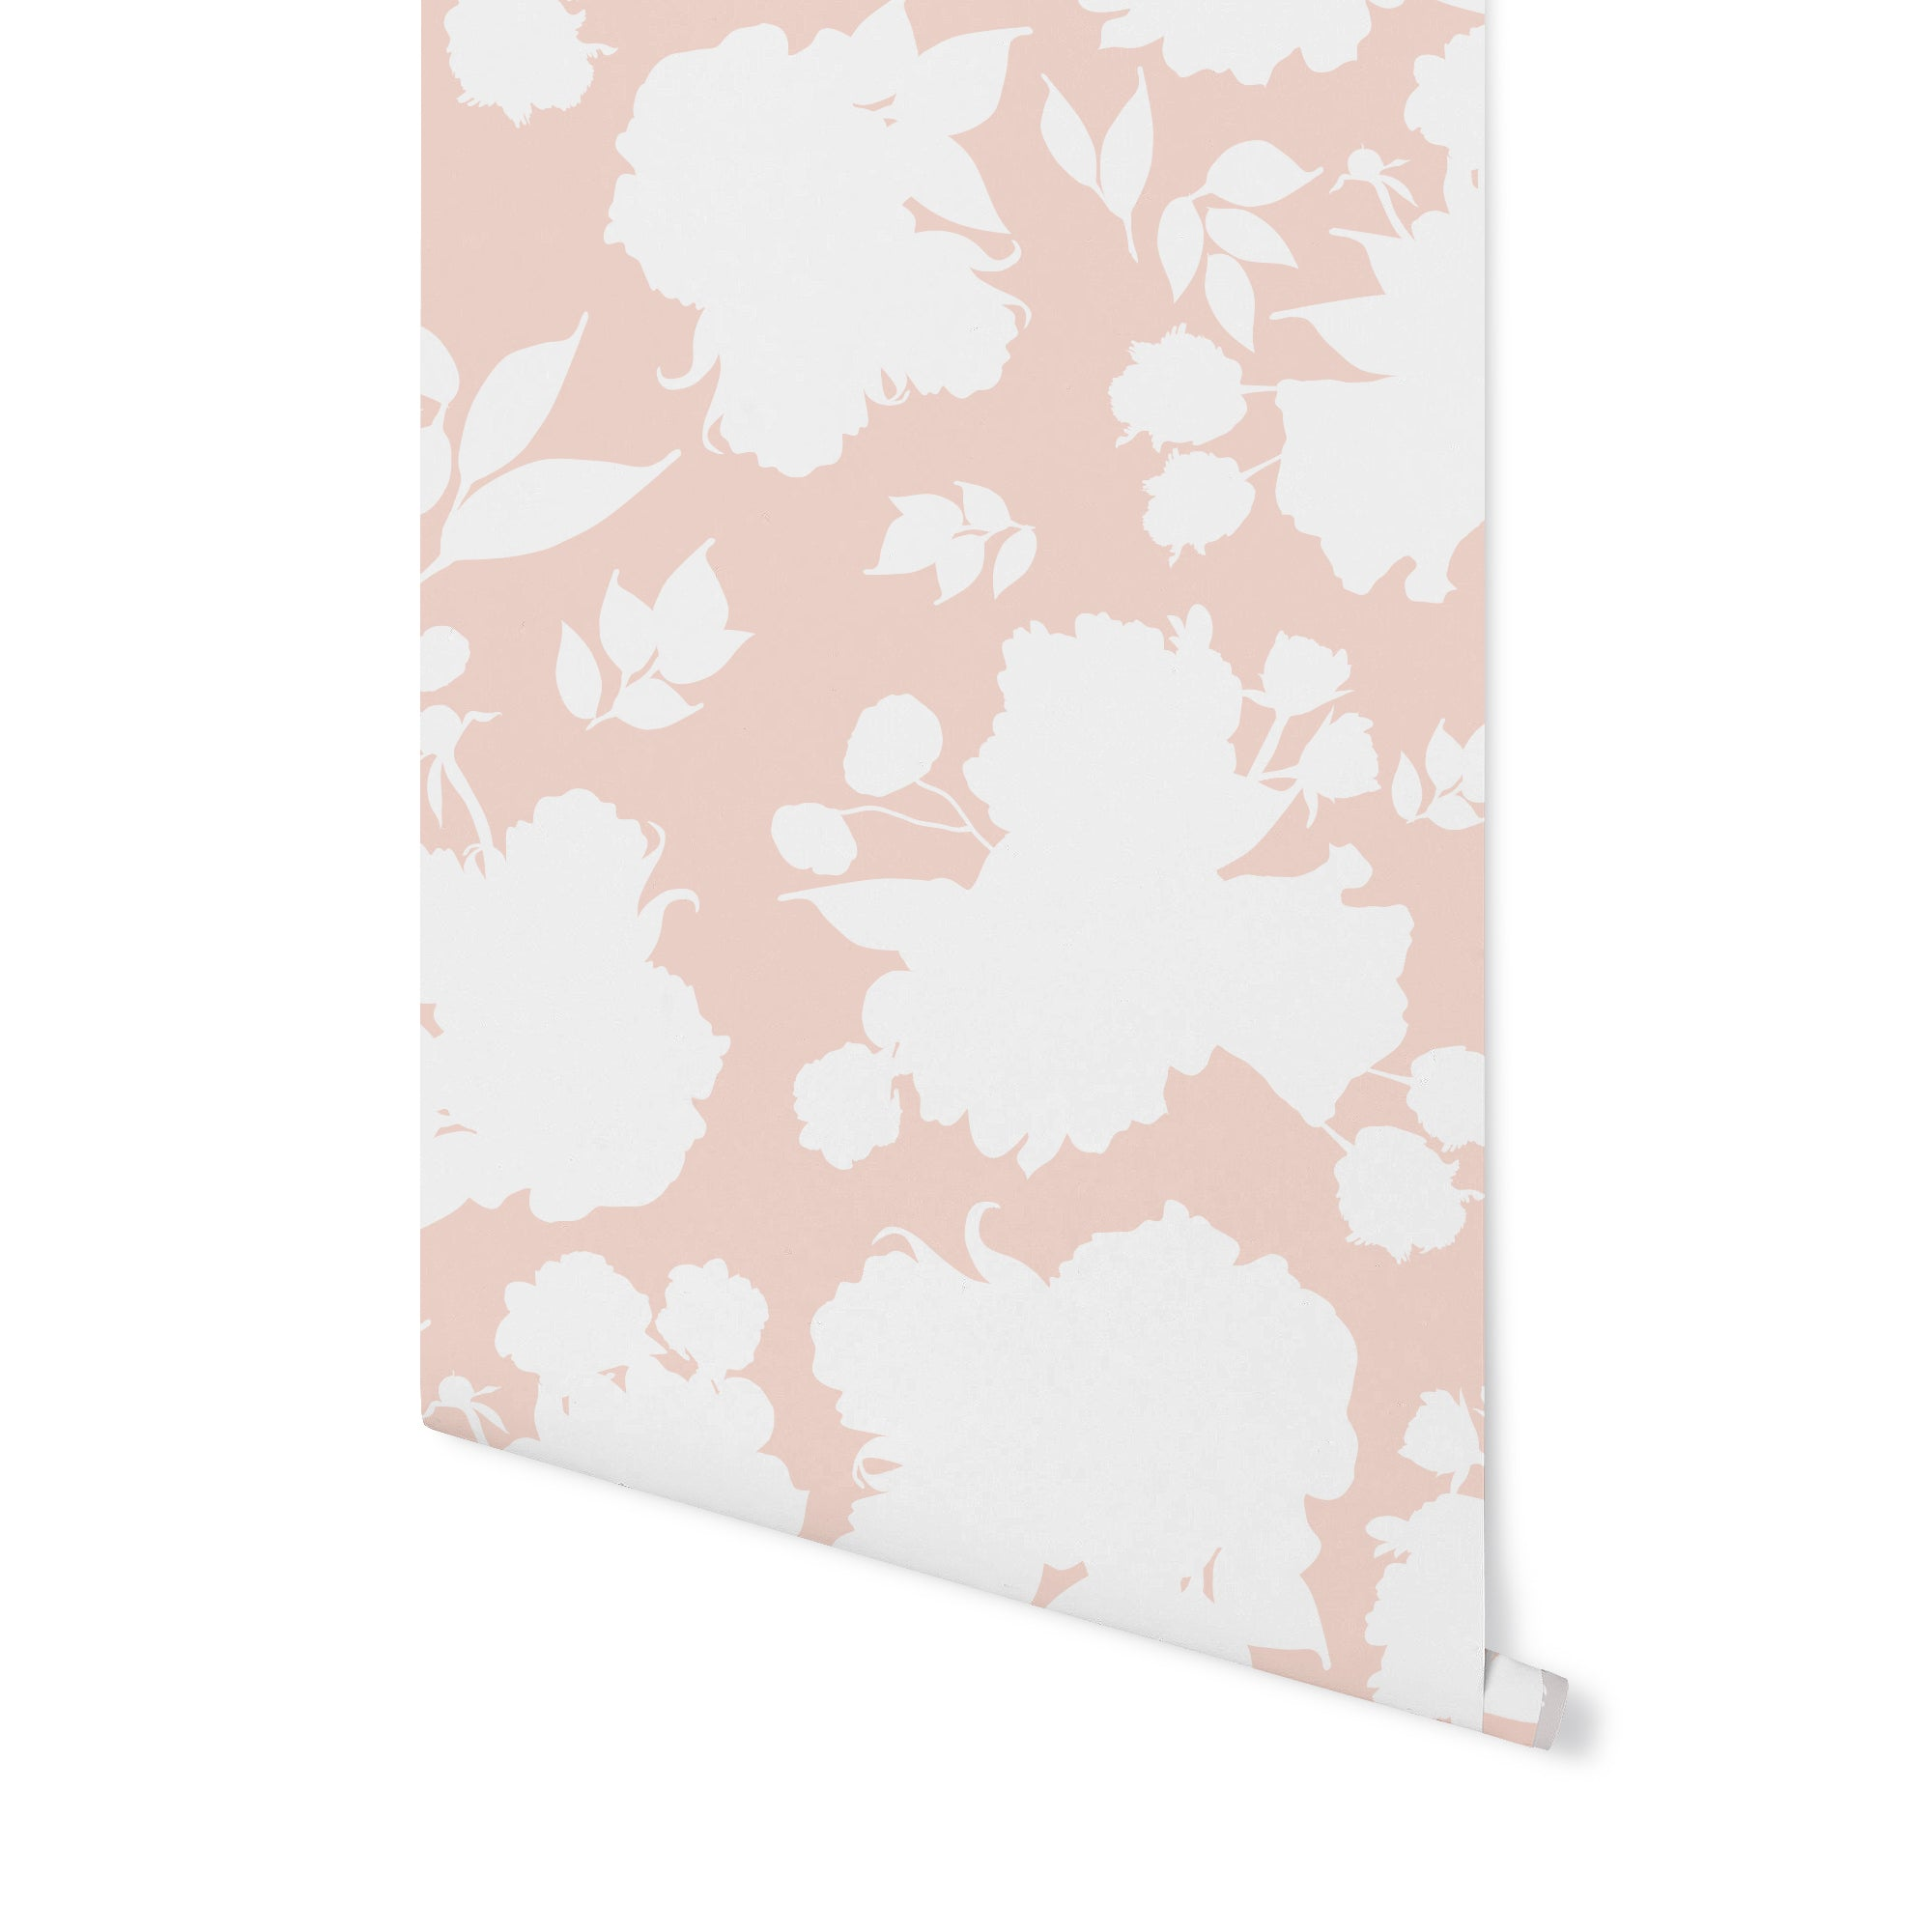 Vivienne ShadowPlay Floral Wallpaper - Blush